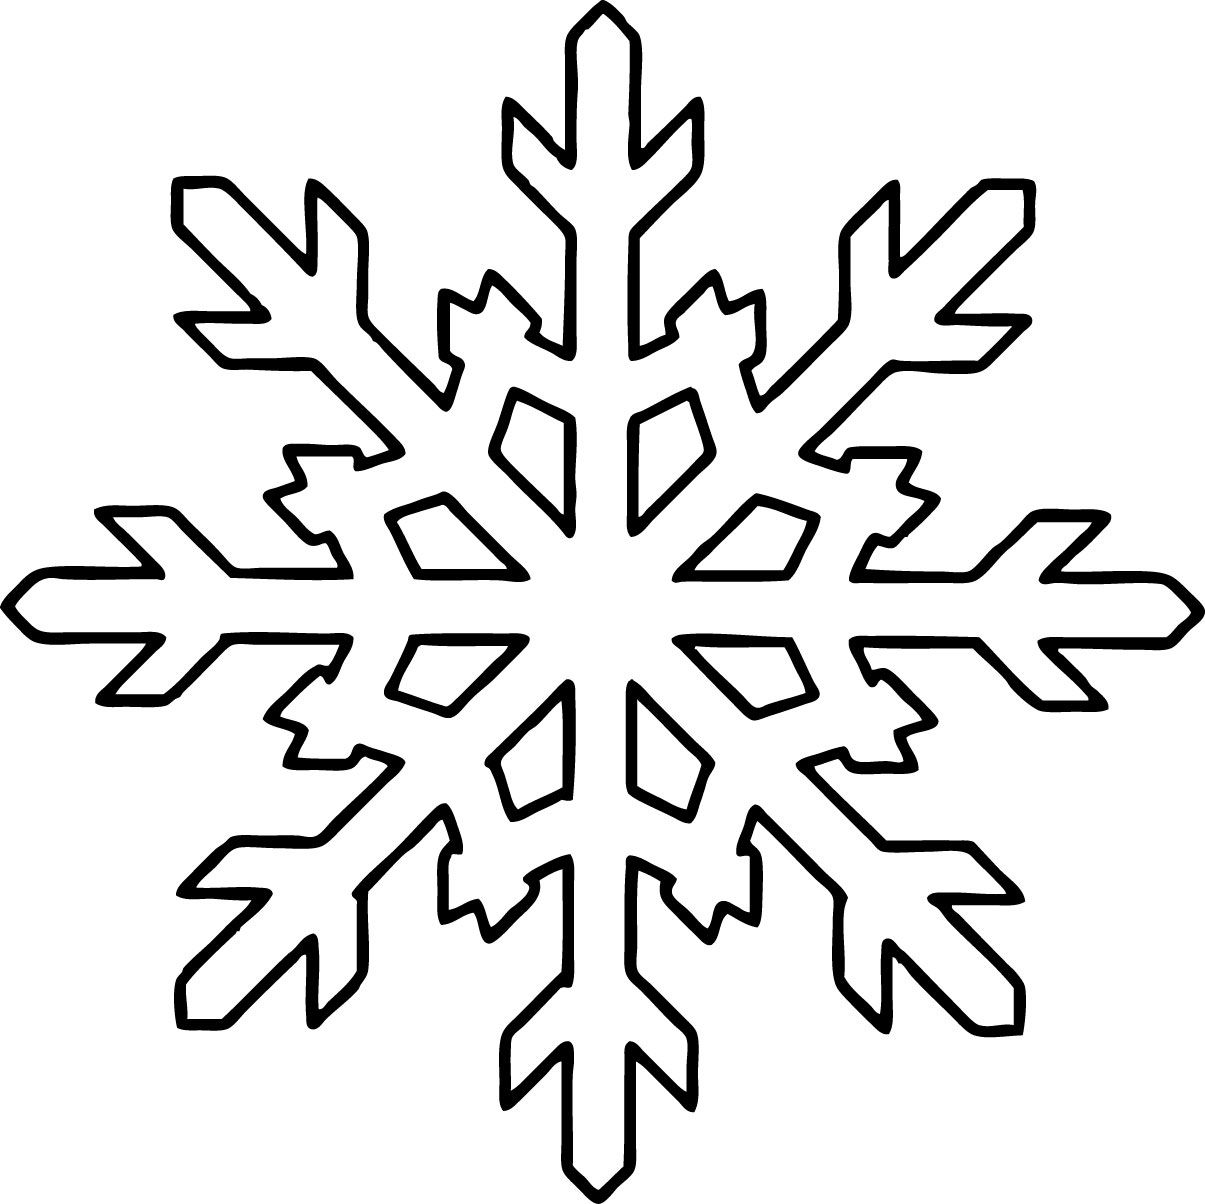 Snowflake coloring pages for kids printable | Seasonal | Pinterest